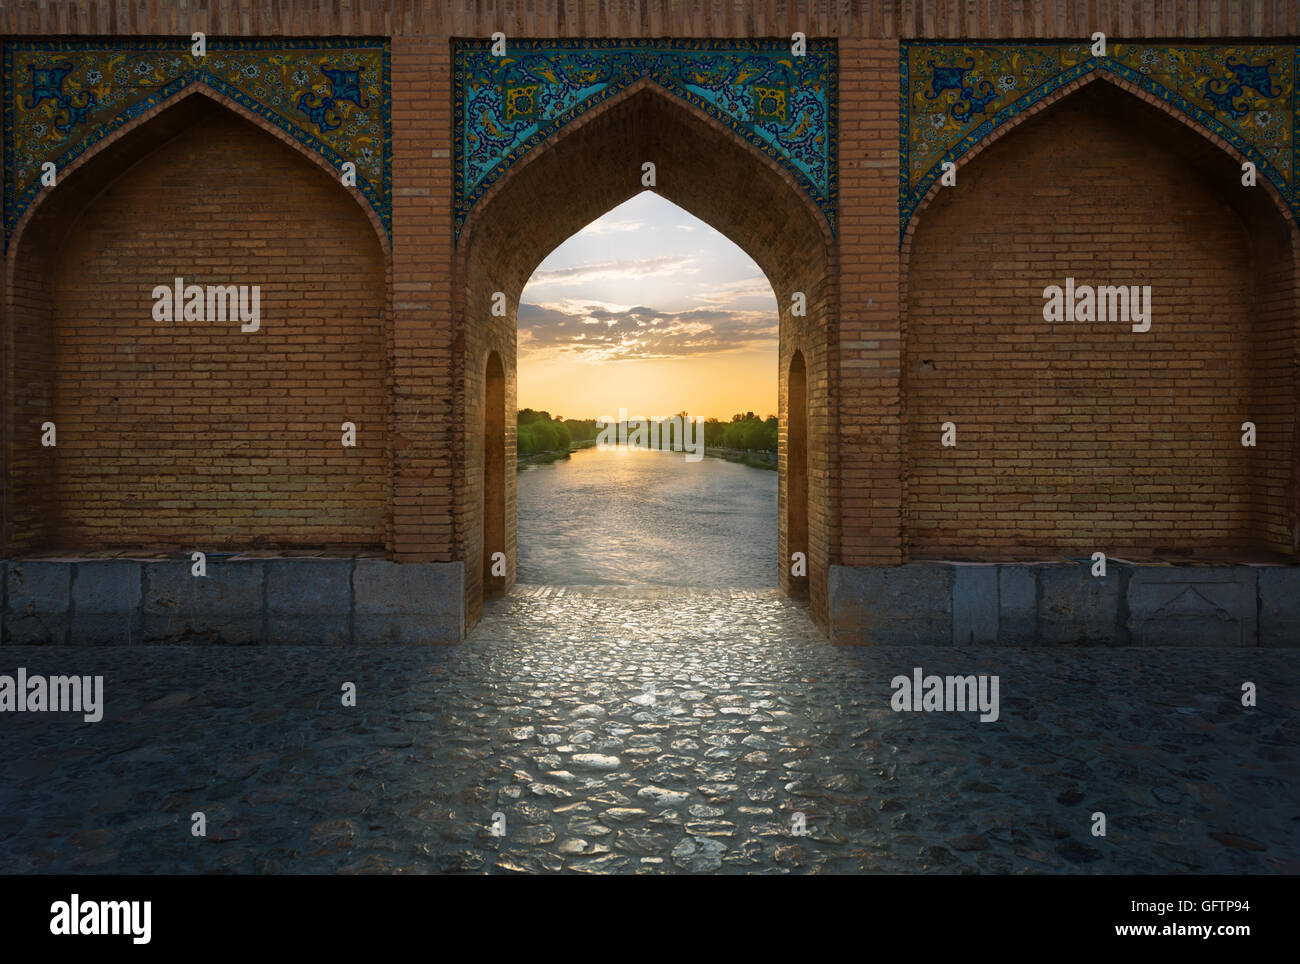 Khaju Bridge is a bridge in the province of Isfahan, Iran. - Stock Image